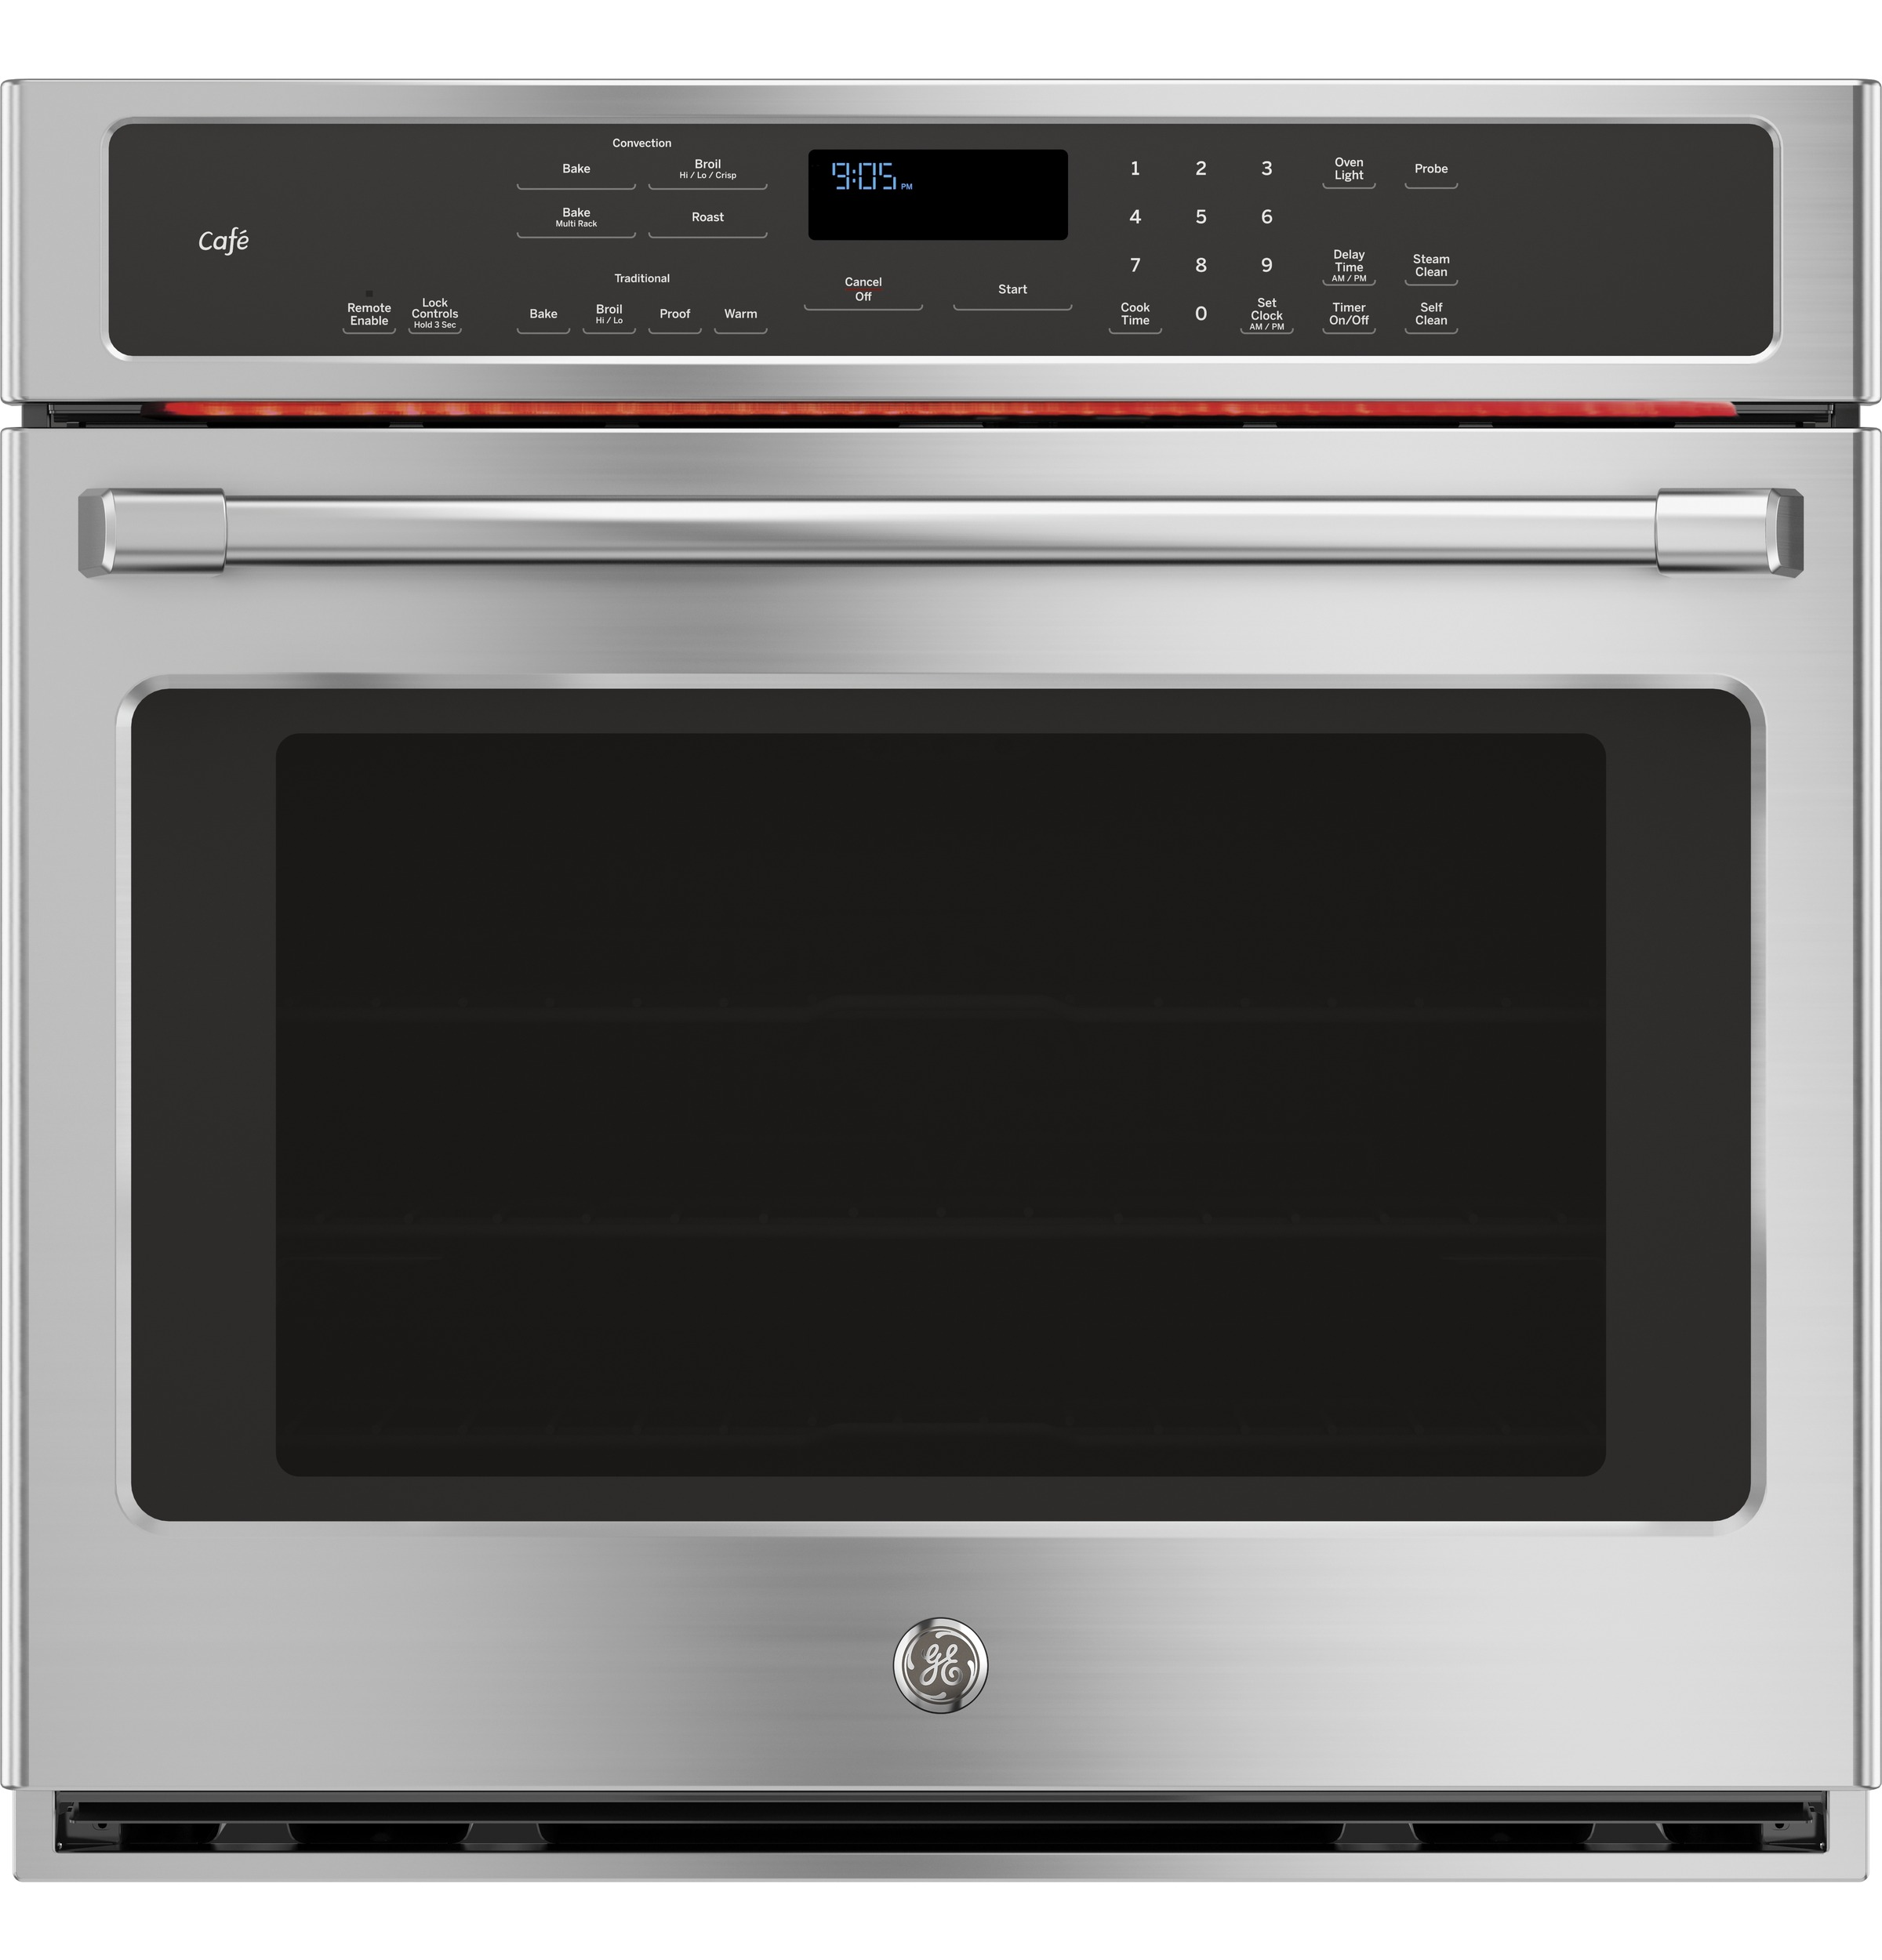 Ge caf series 30 built in single convection wall oven product image nvjuhfo Image collections